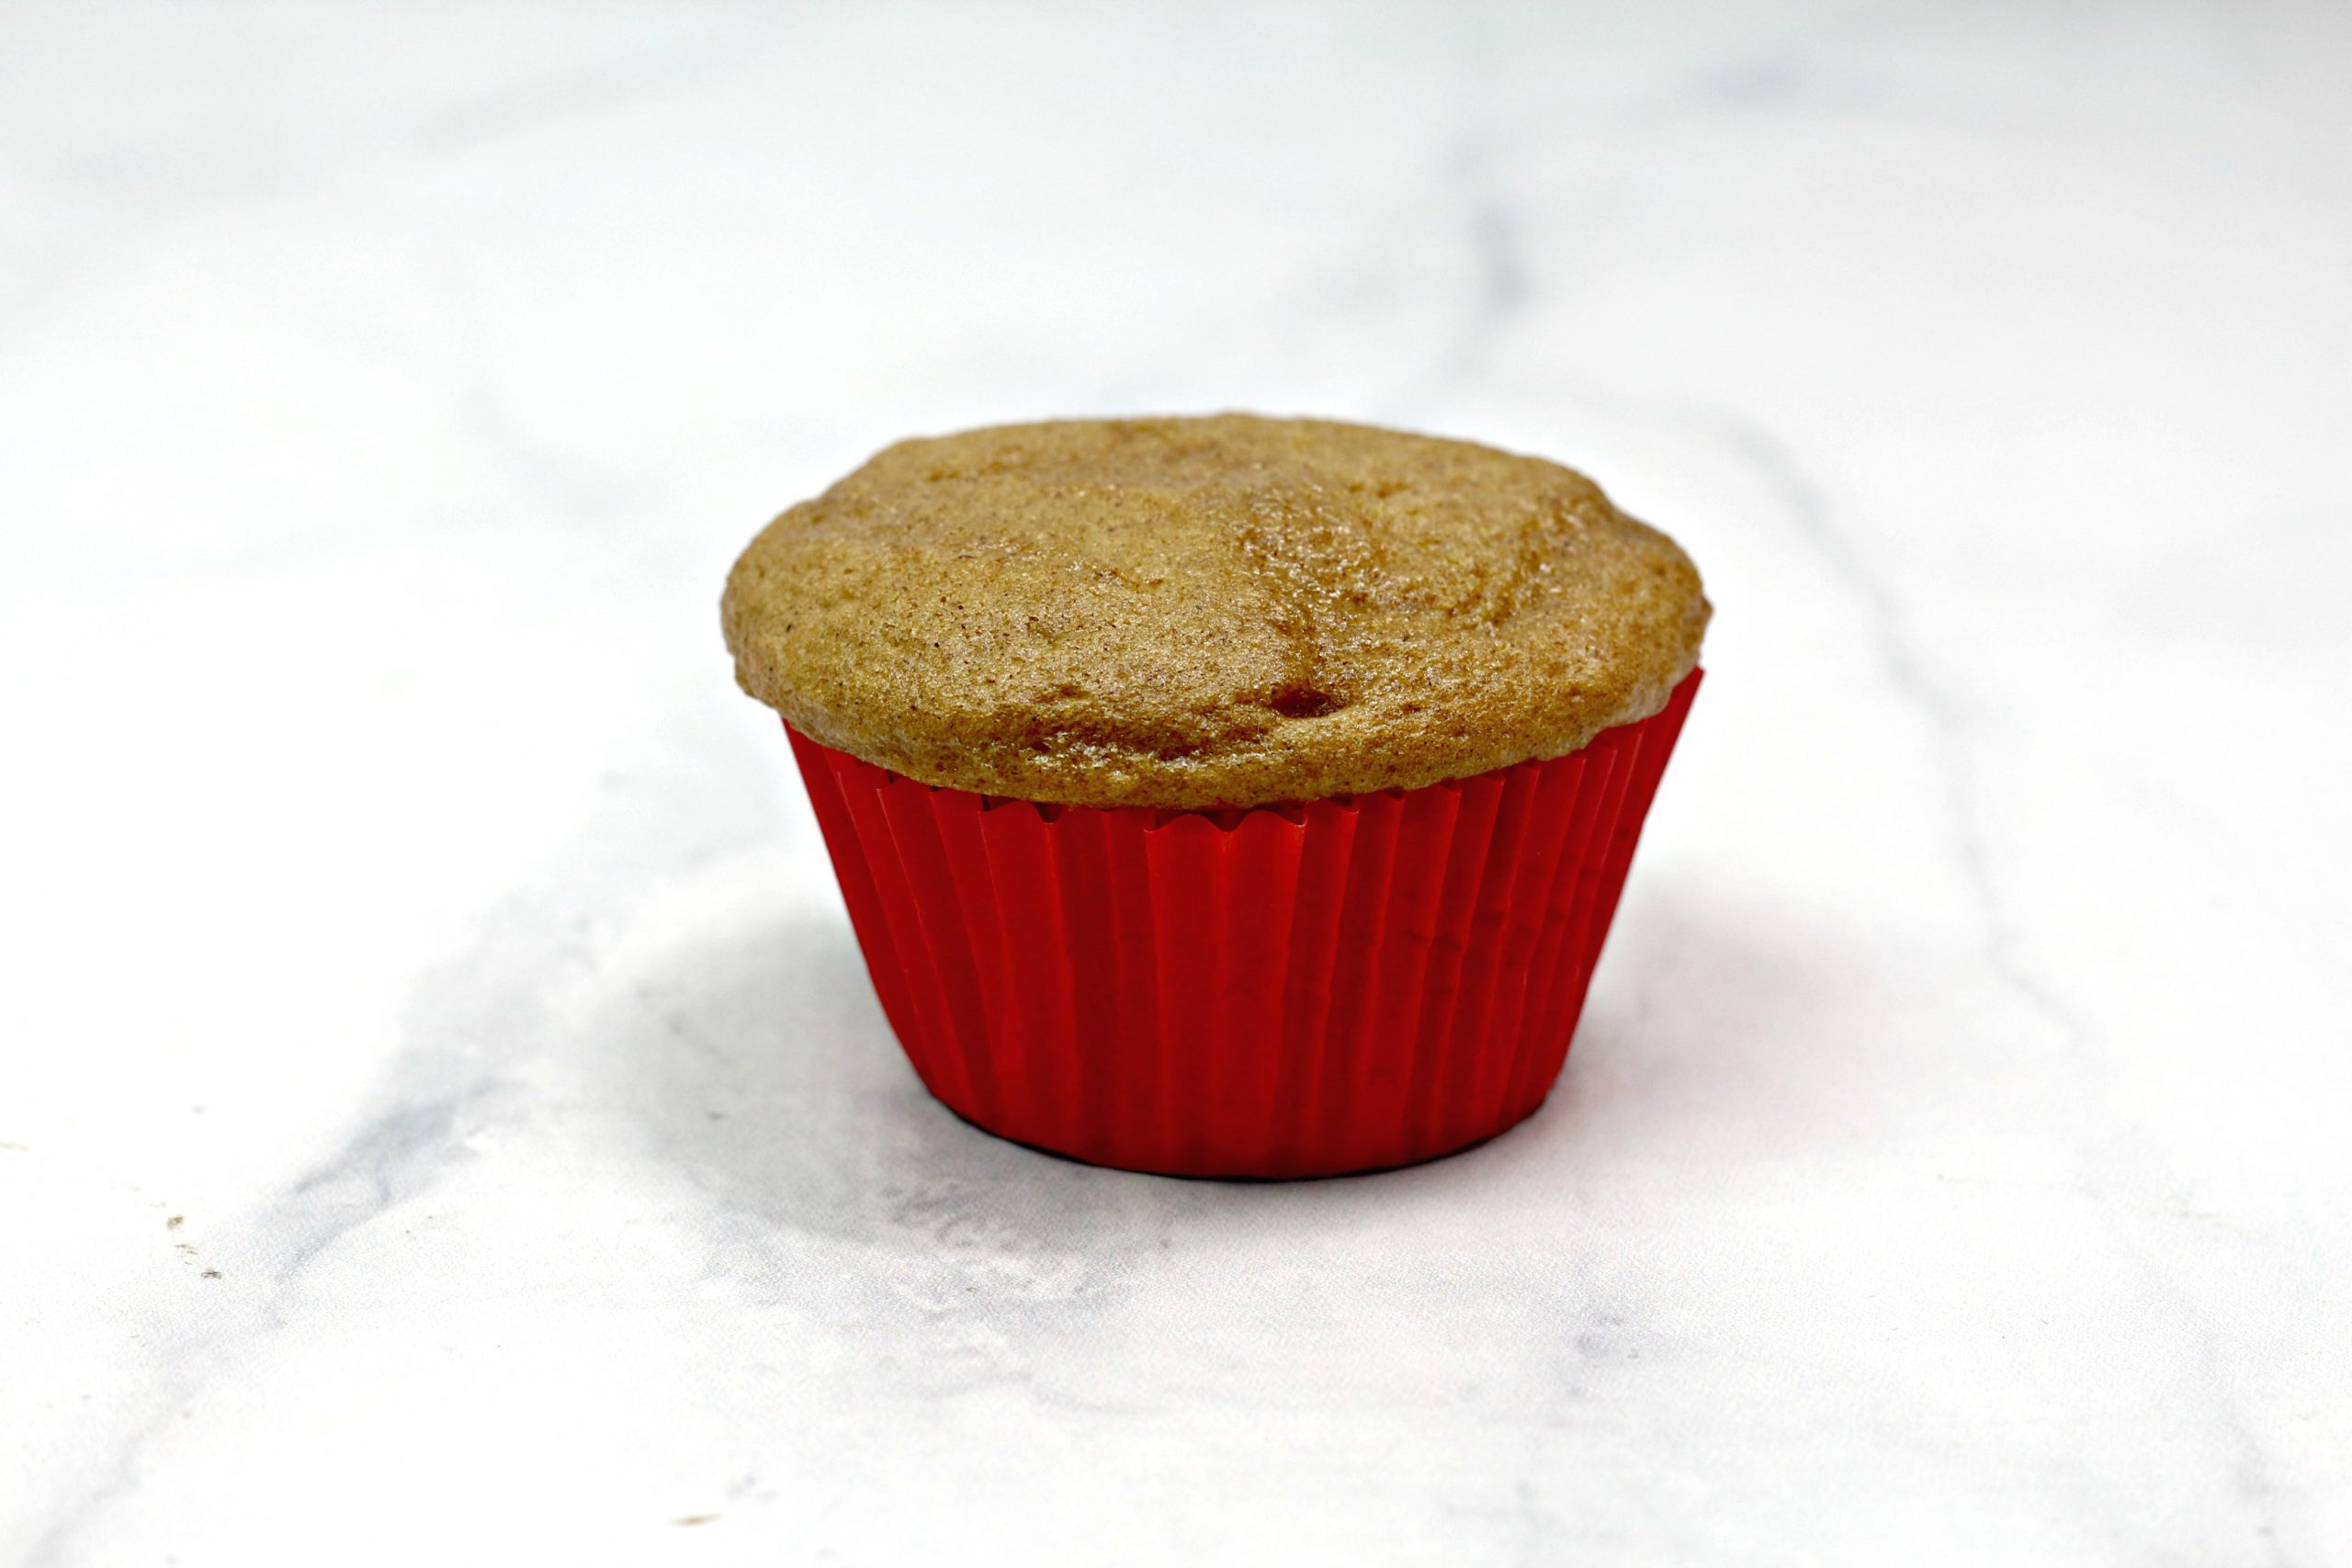 A finished and bare cupcake in a cupcake liner.